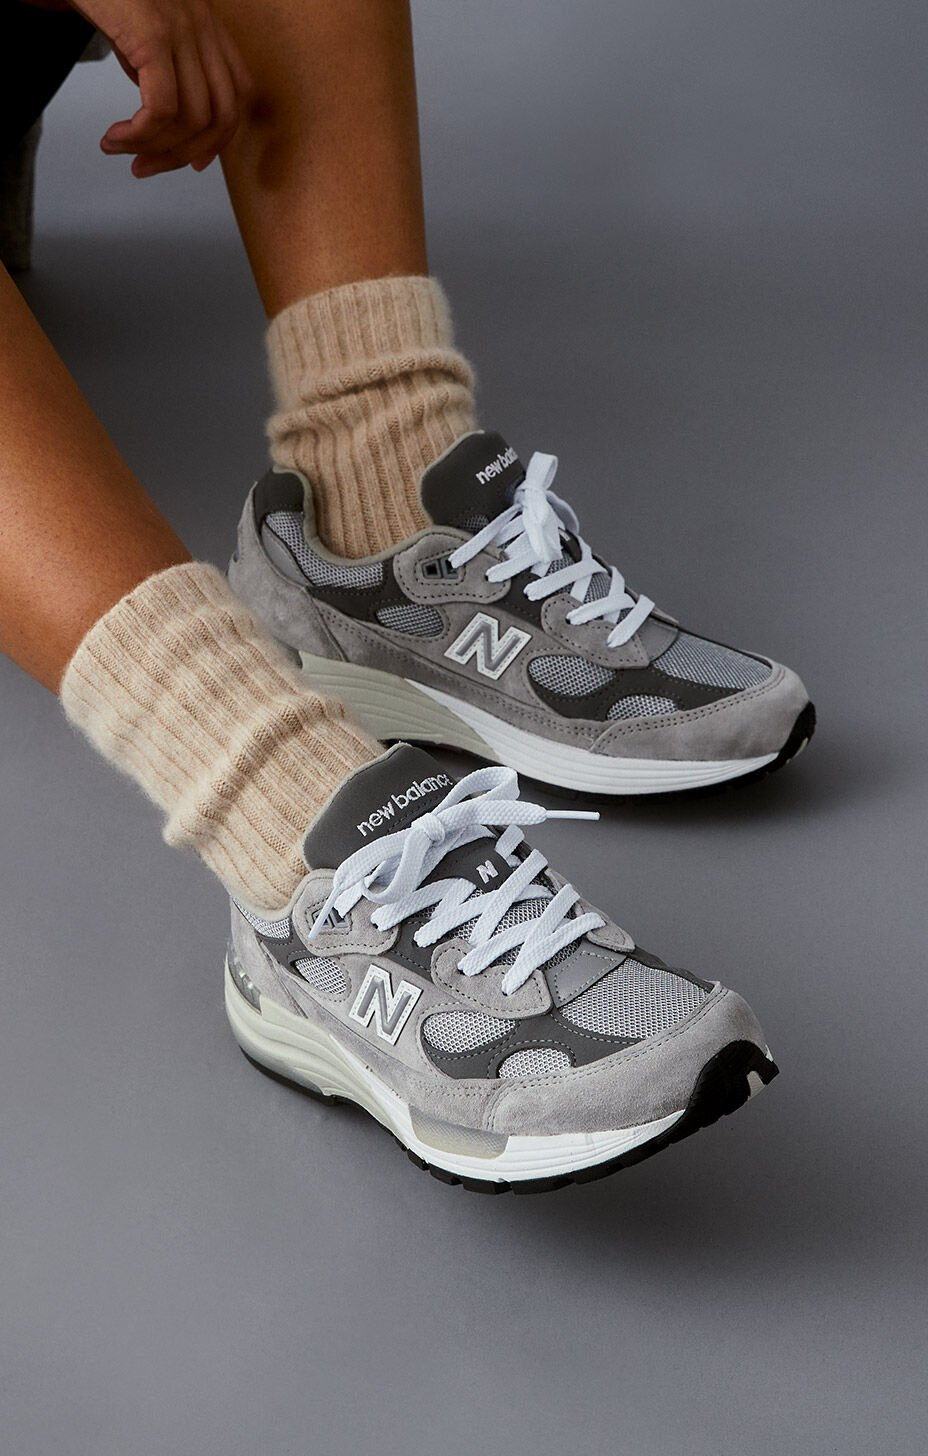 New Balance® Shoes & Apparel   Official Site - New Balance